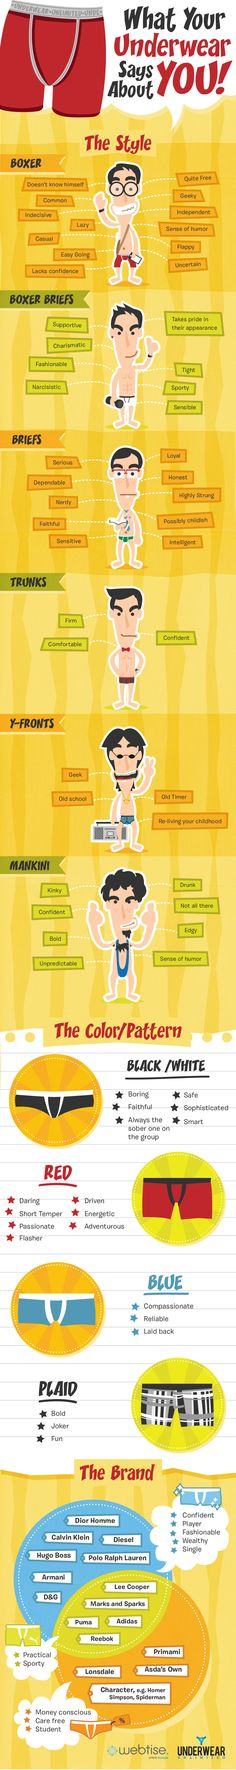 An infographic which makes bold statements regarding what your underwear say about you.